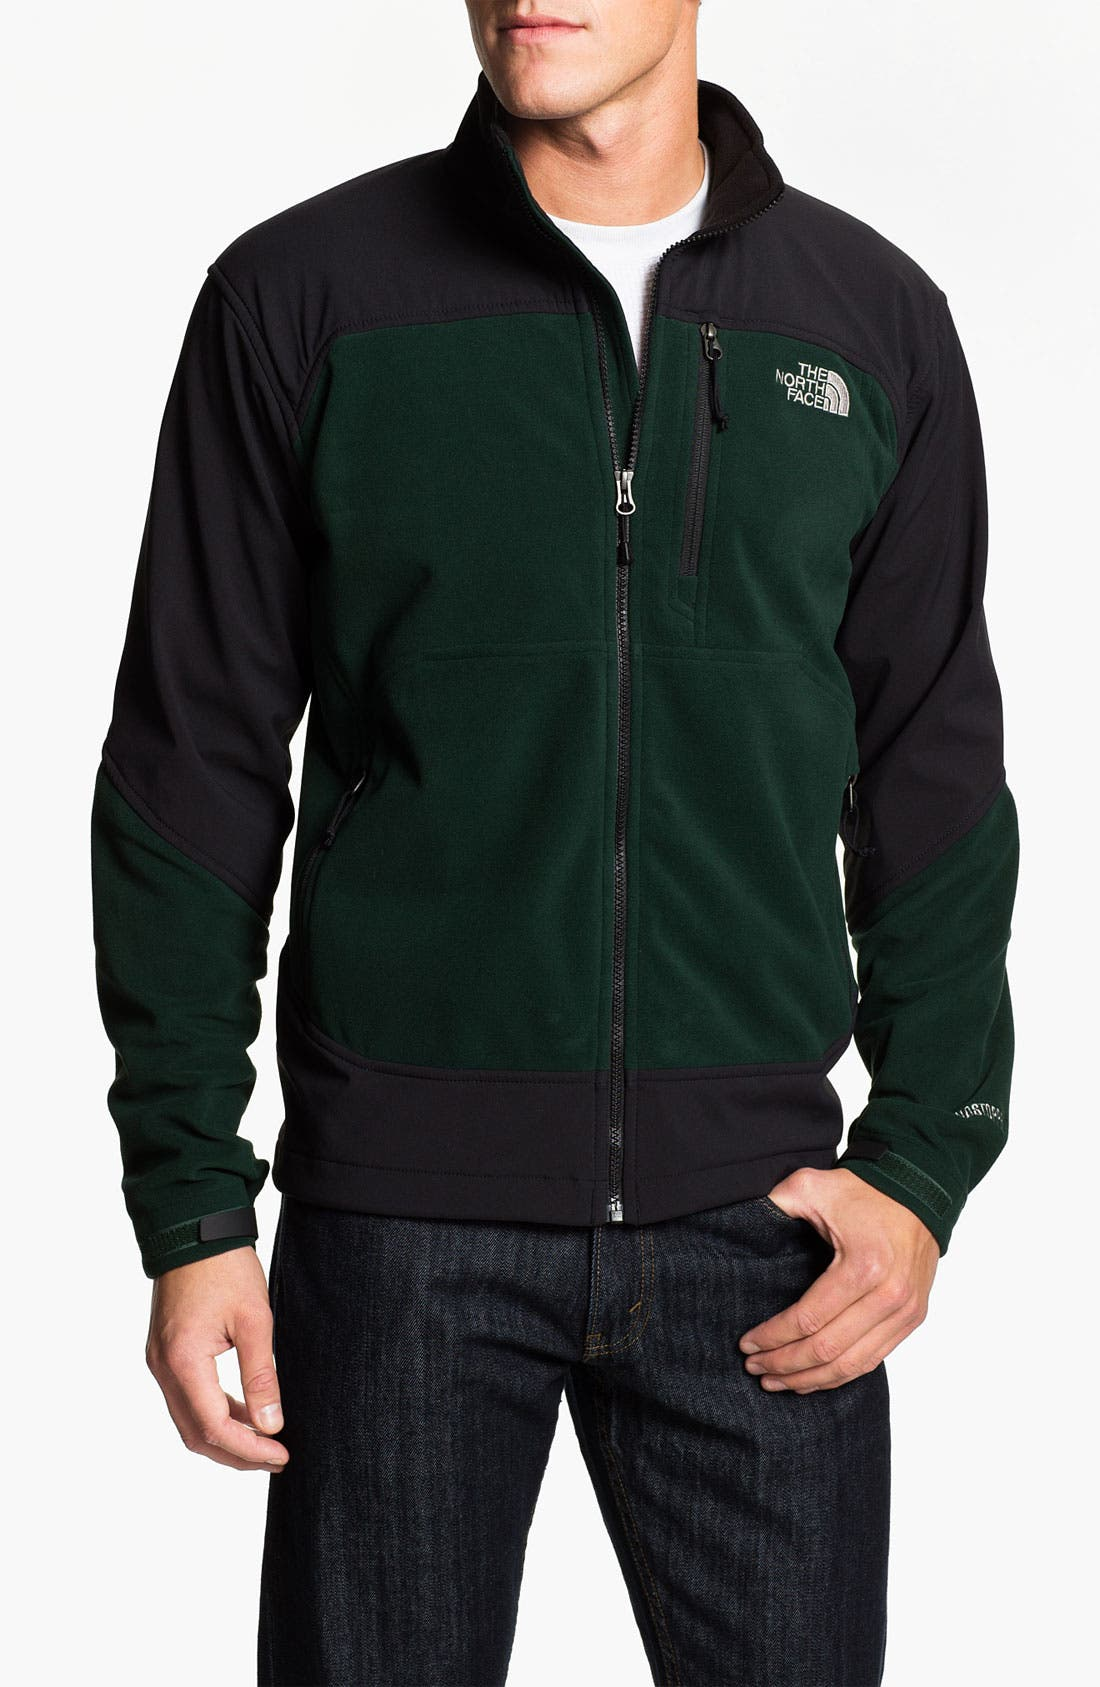 Alternate Image 1 Selected - The North Face 'Pamir' GORE WINDSTOPPER® Fleece Jacket